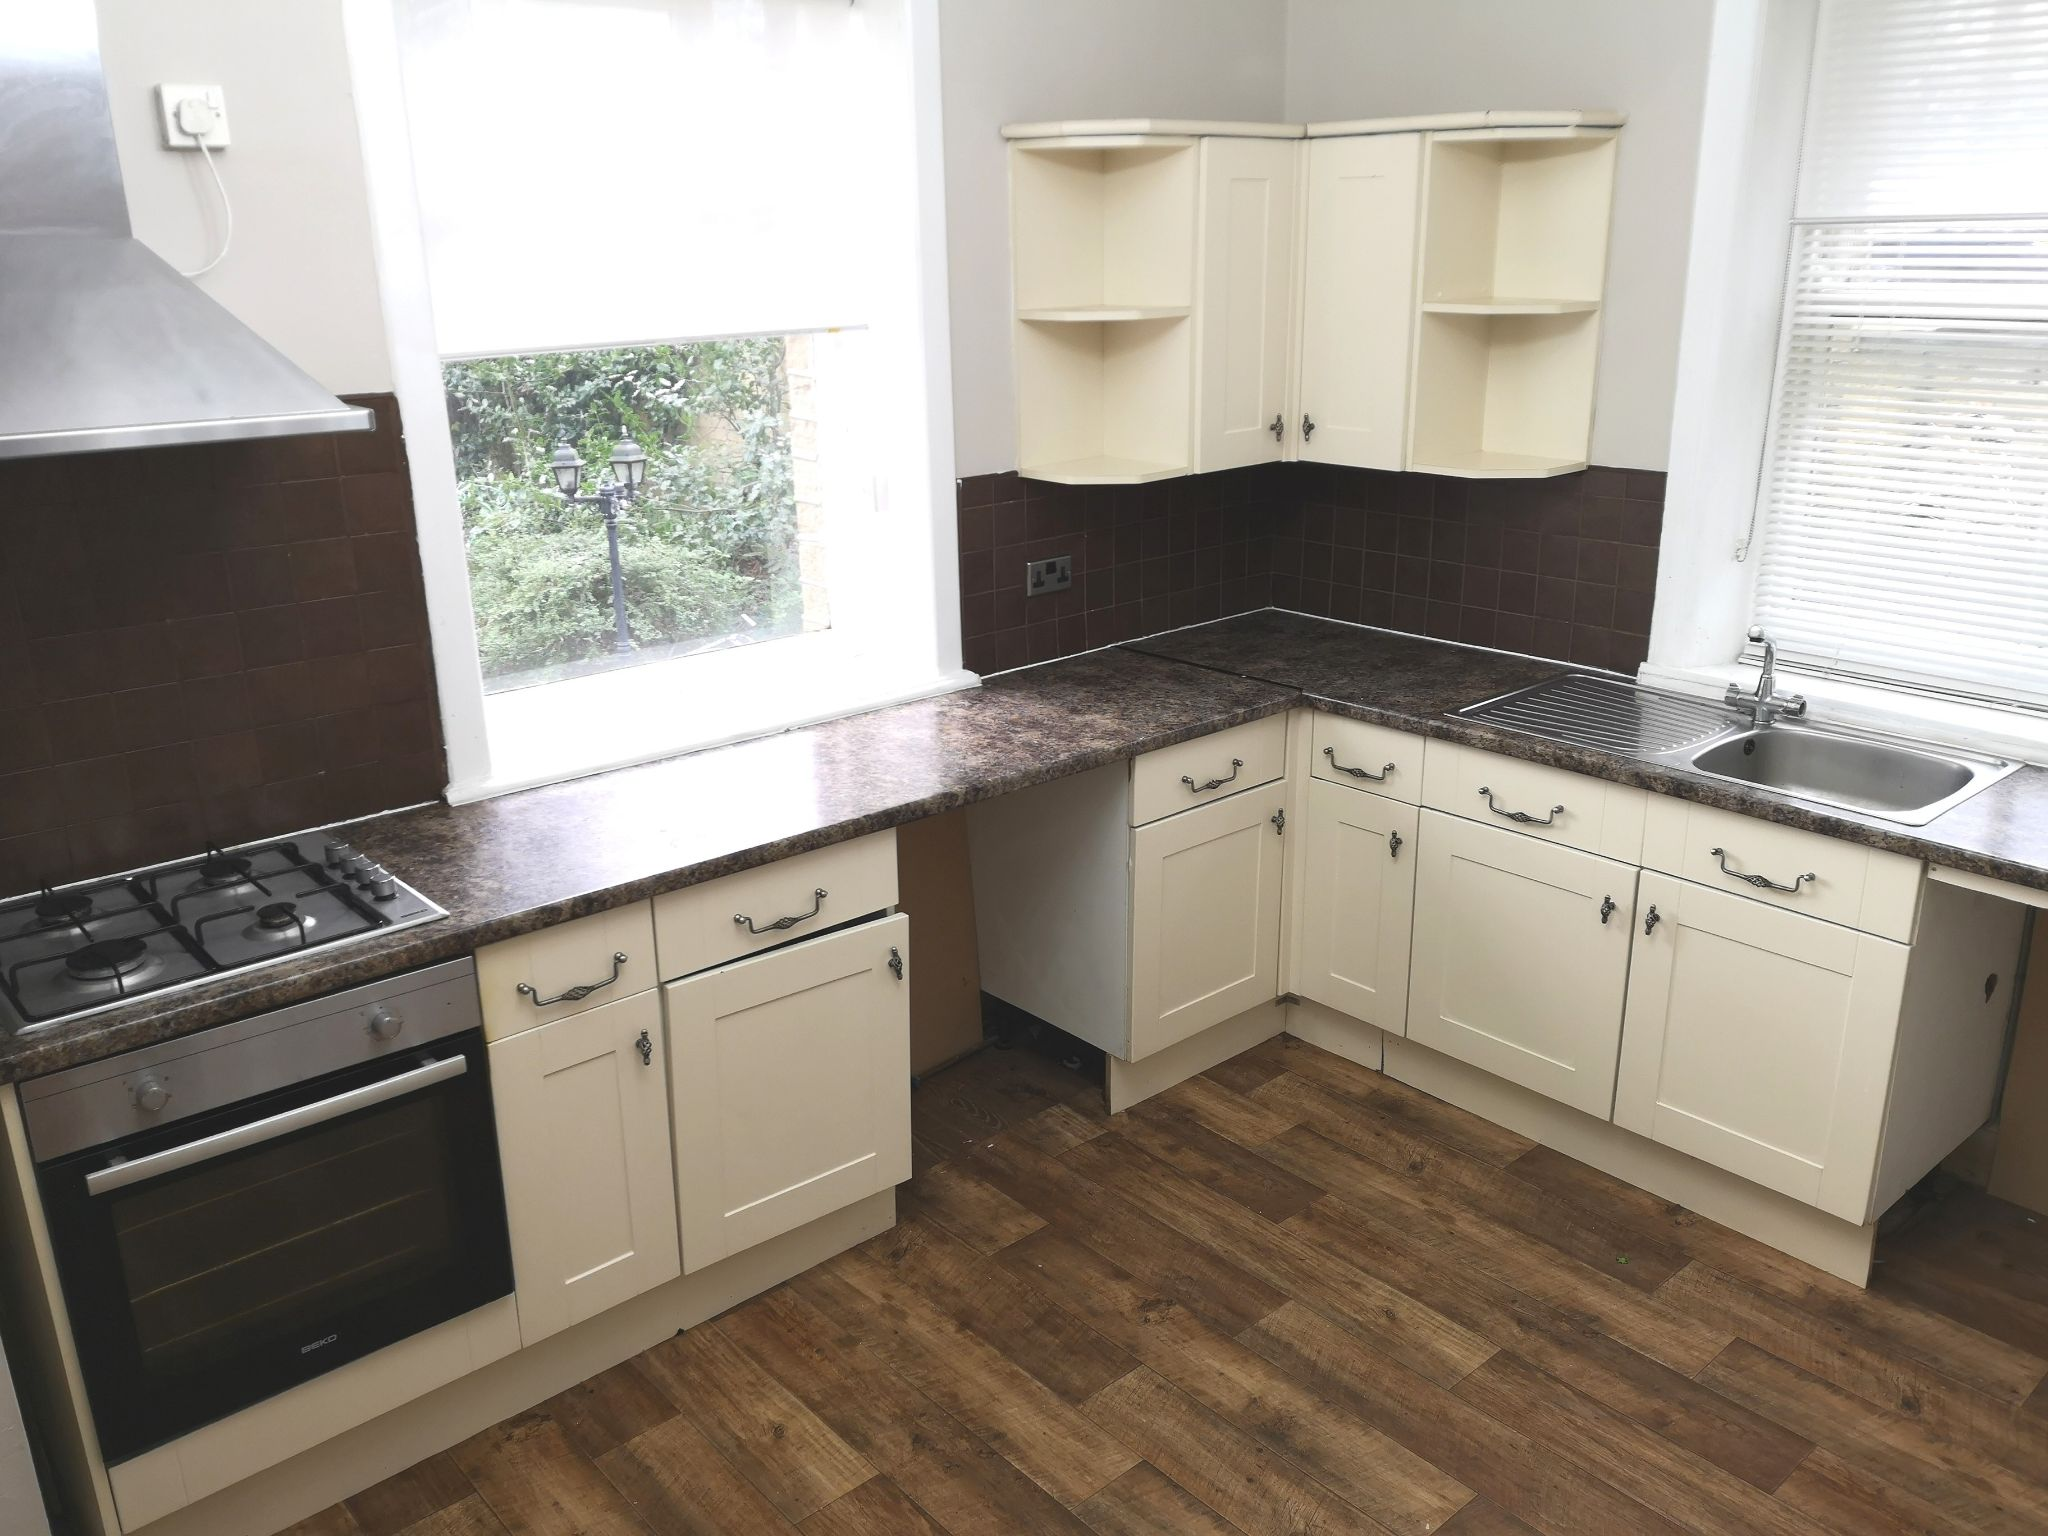 5 bedroom detached house For Sale in Huddersfield - Kitchen